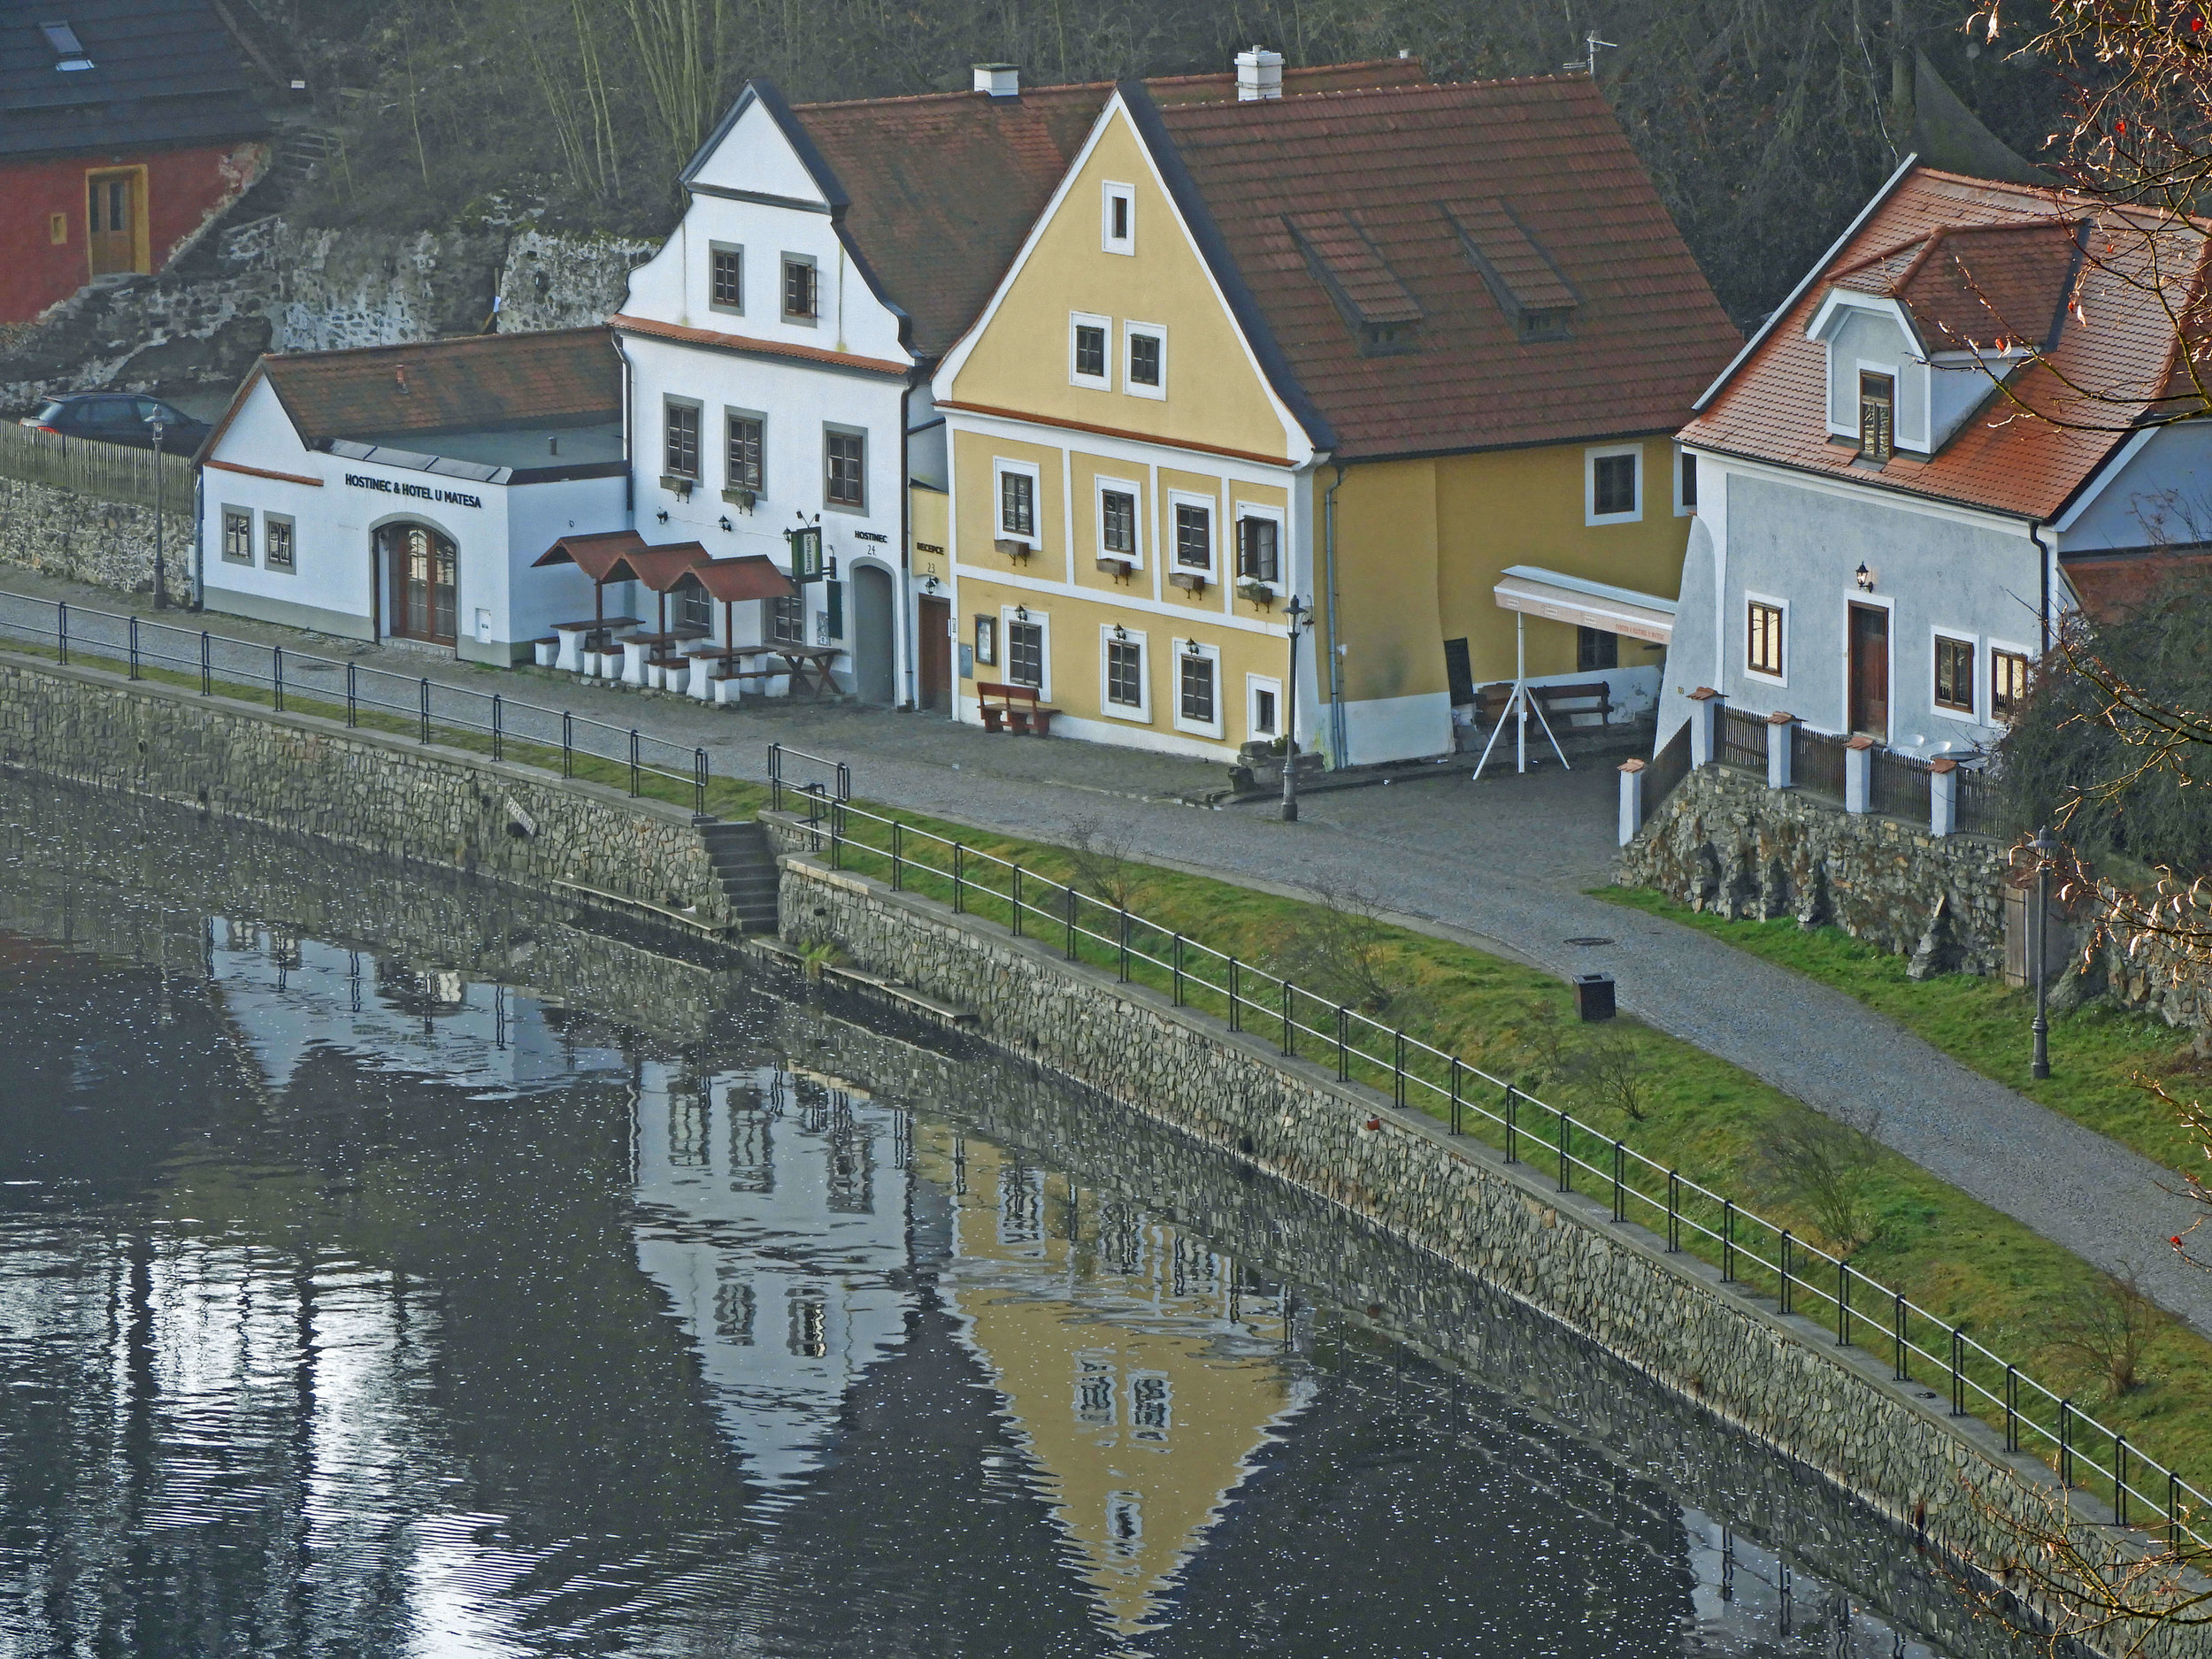 czech-cesky-river-house-reflection-water.jpg